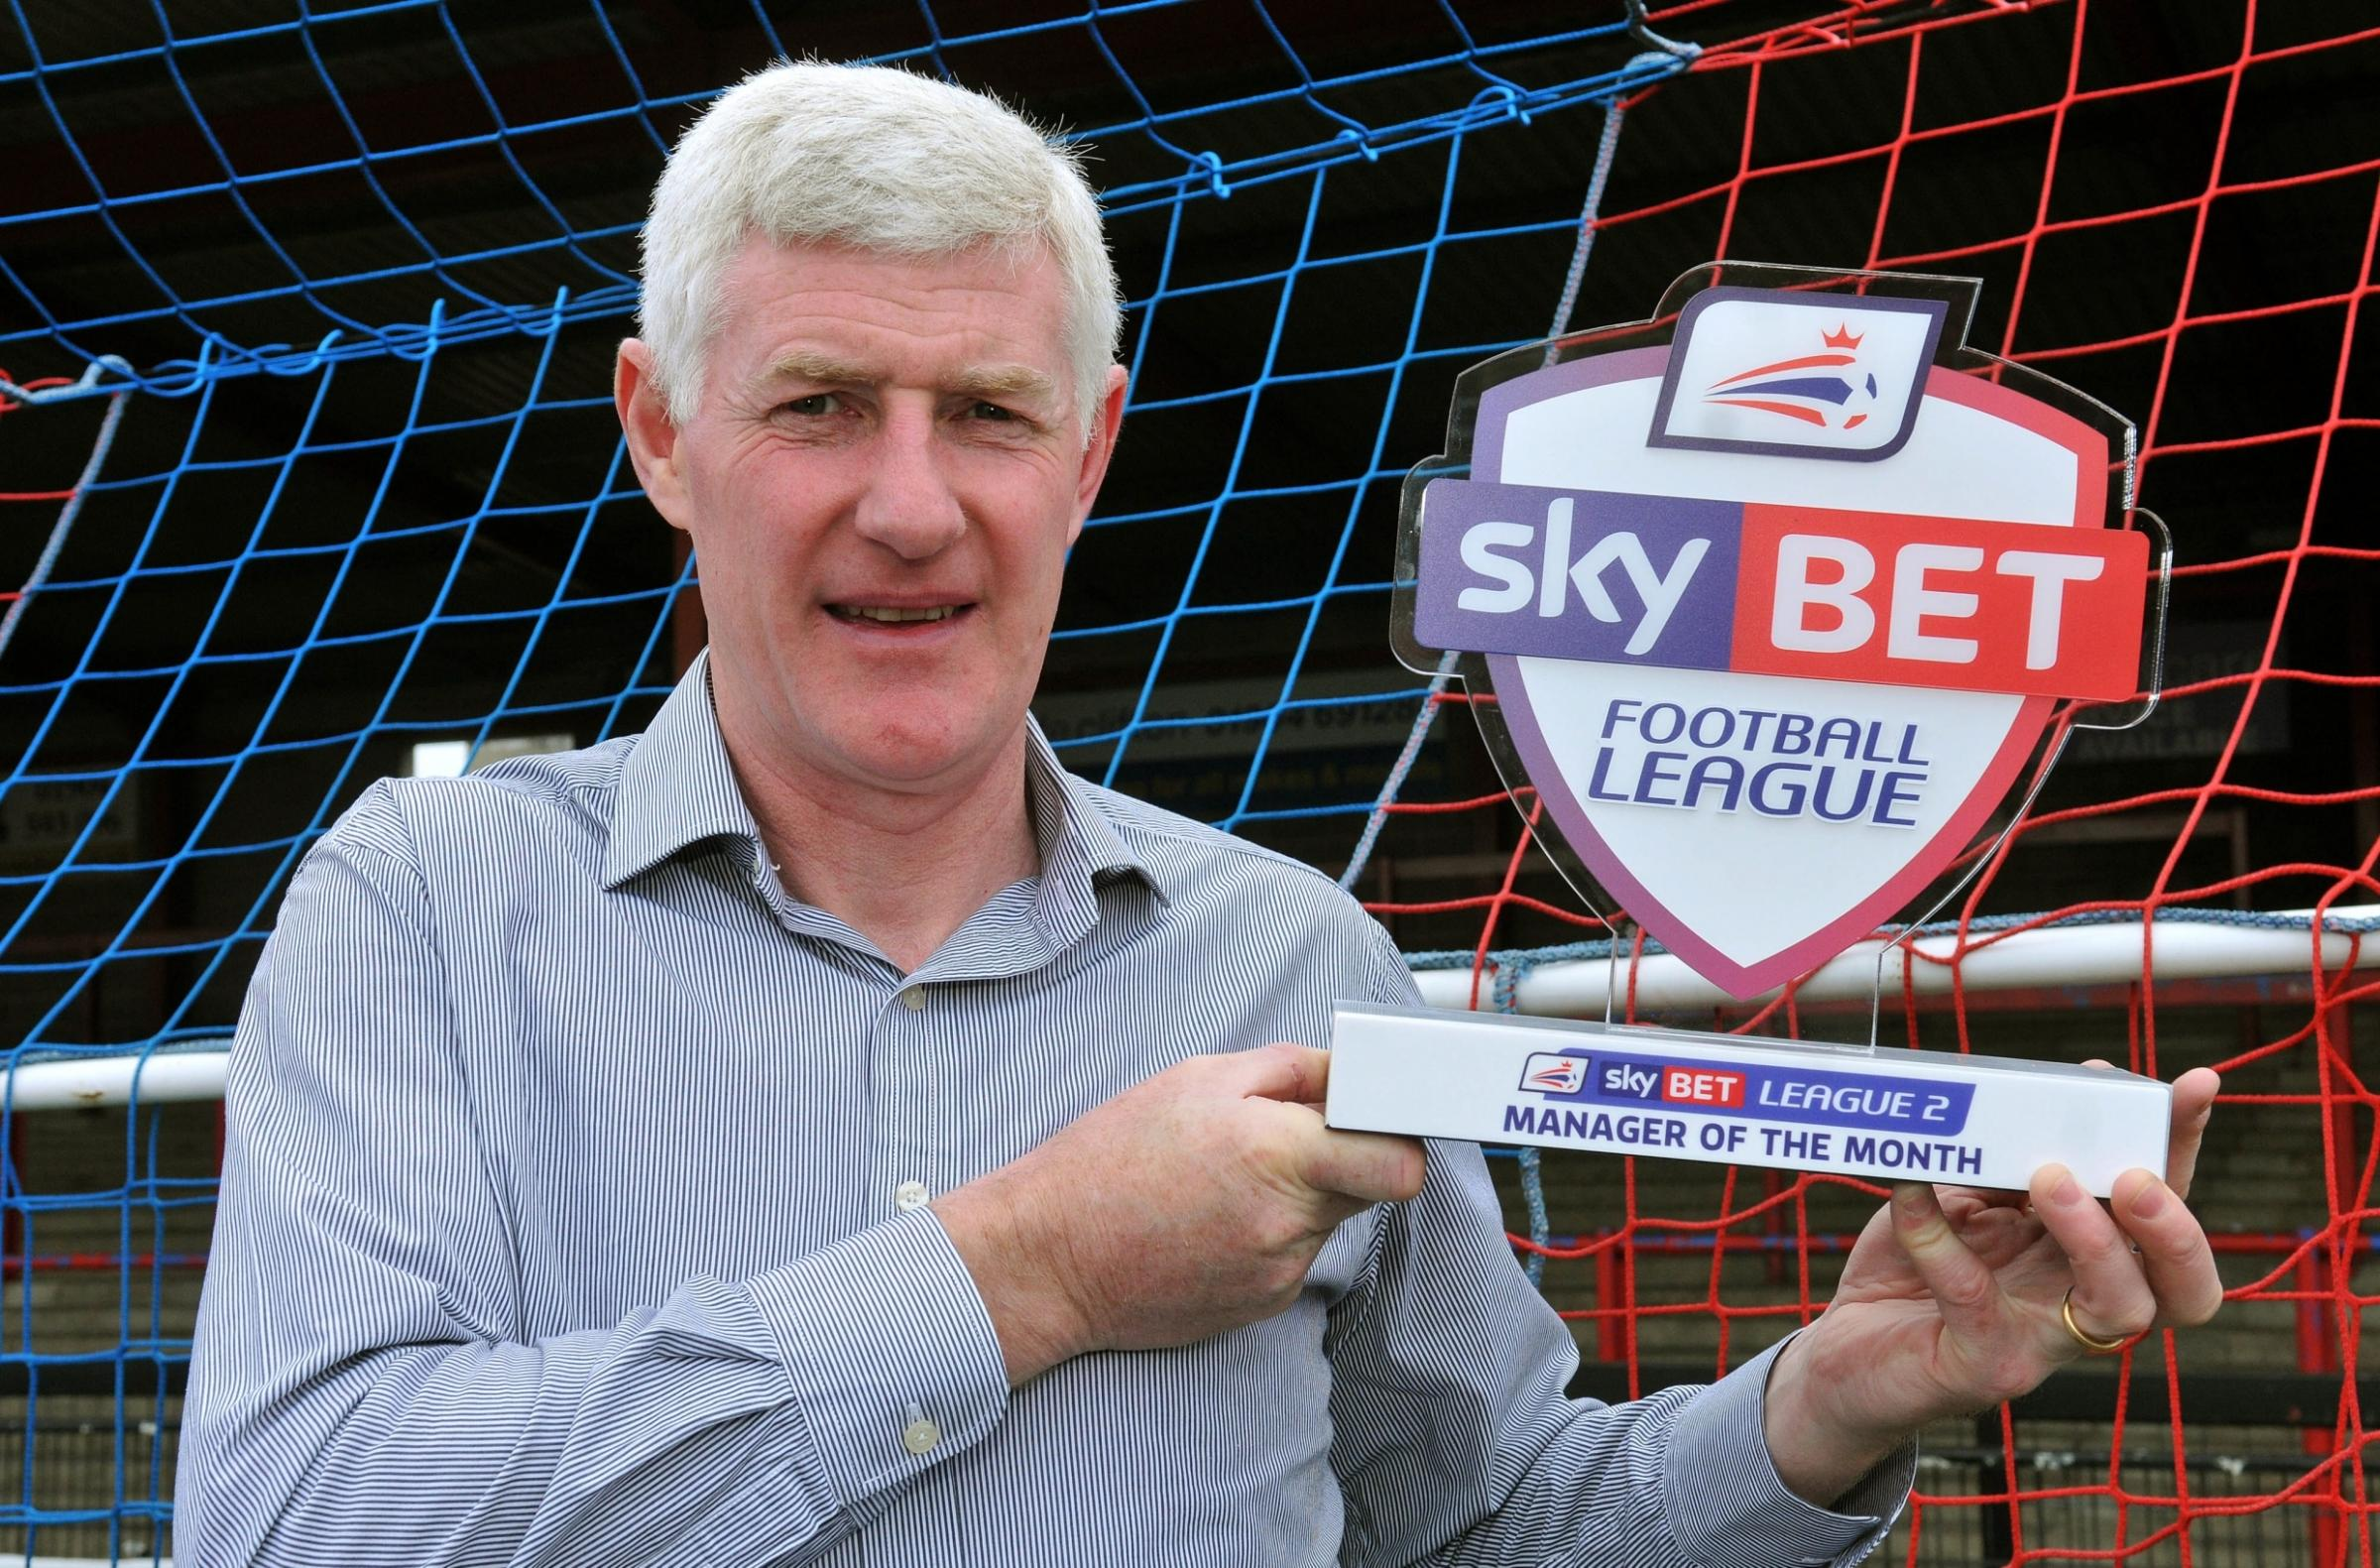 SKY BET GONG: York City boss Nigel Worthington with his Sky Bet League Two manager of the month award for March